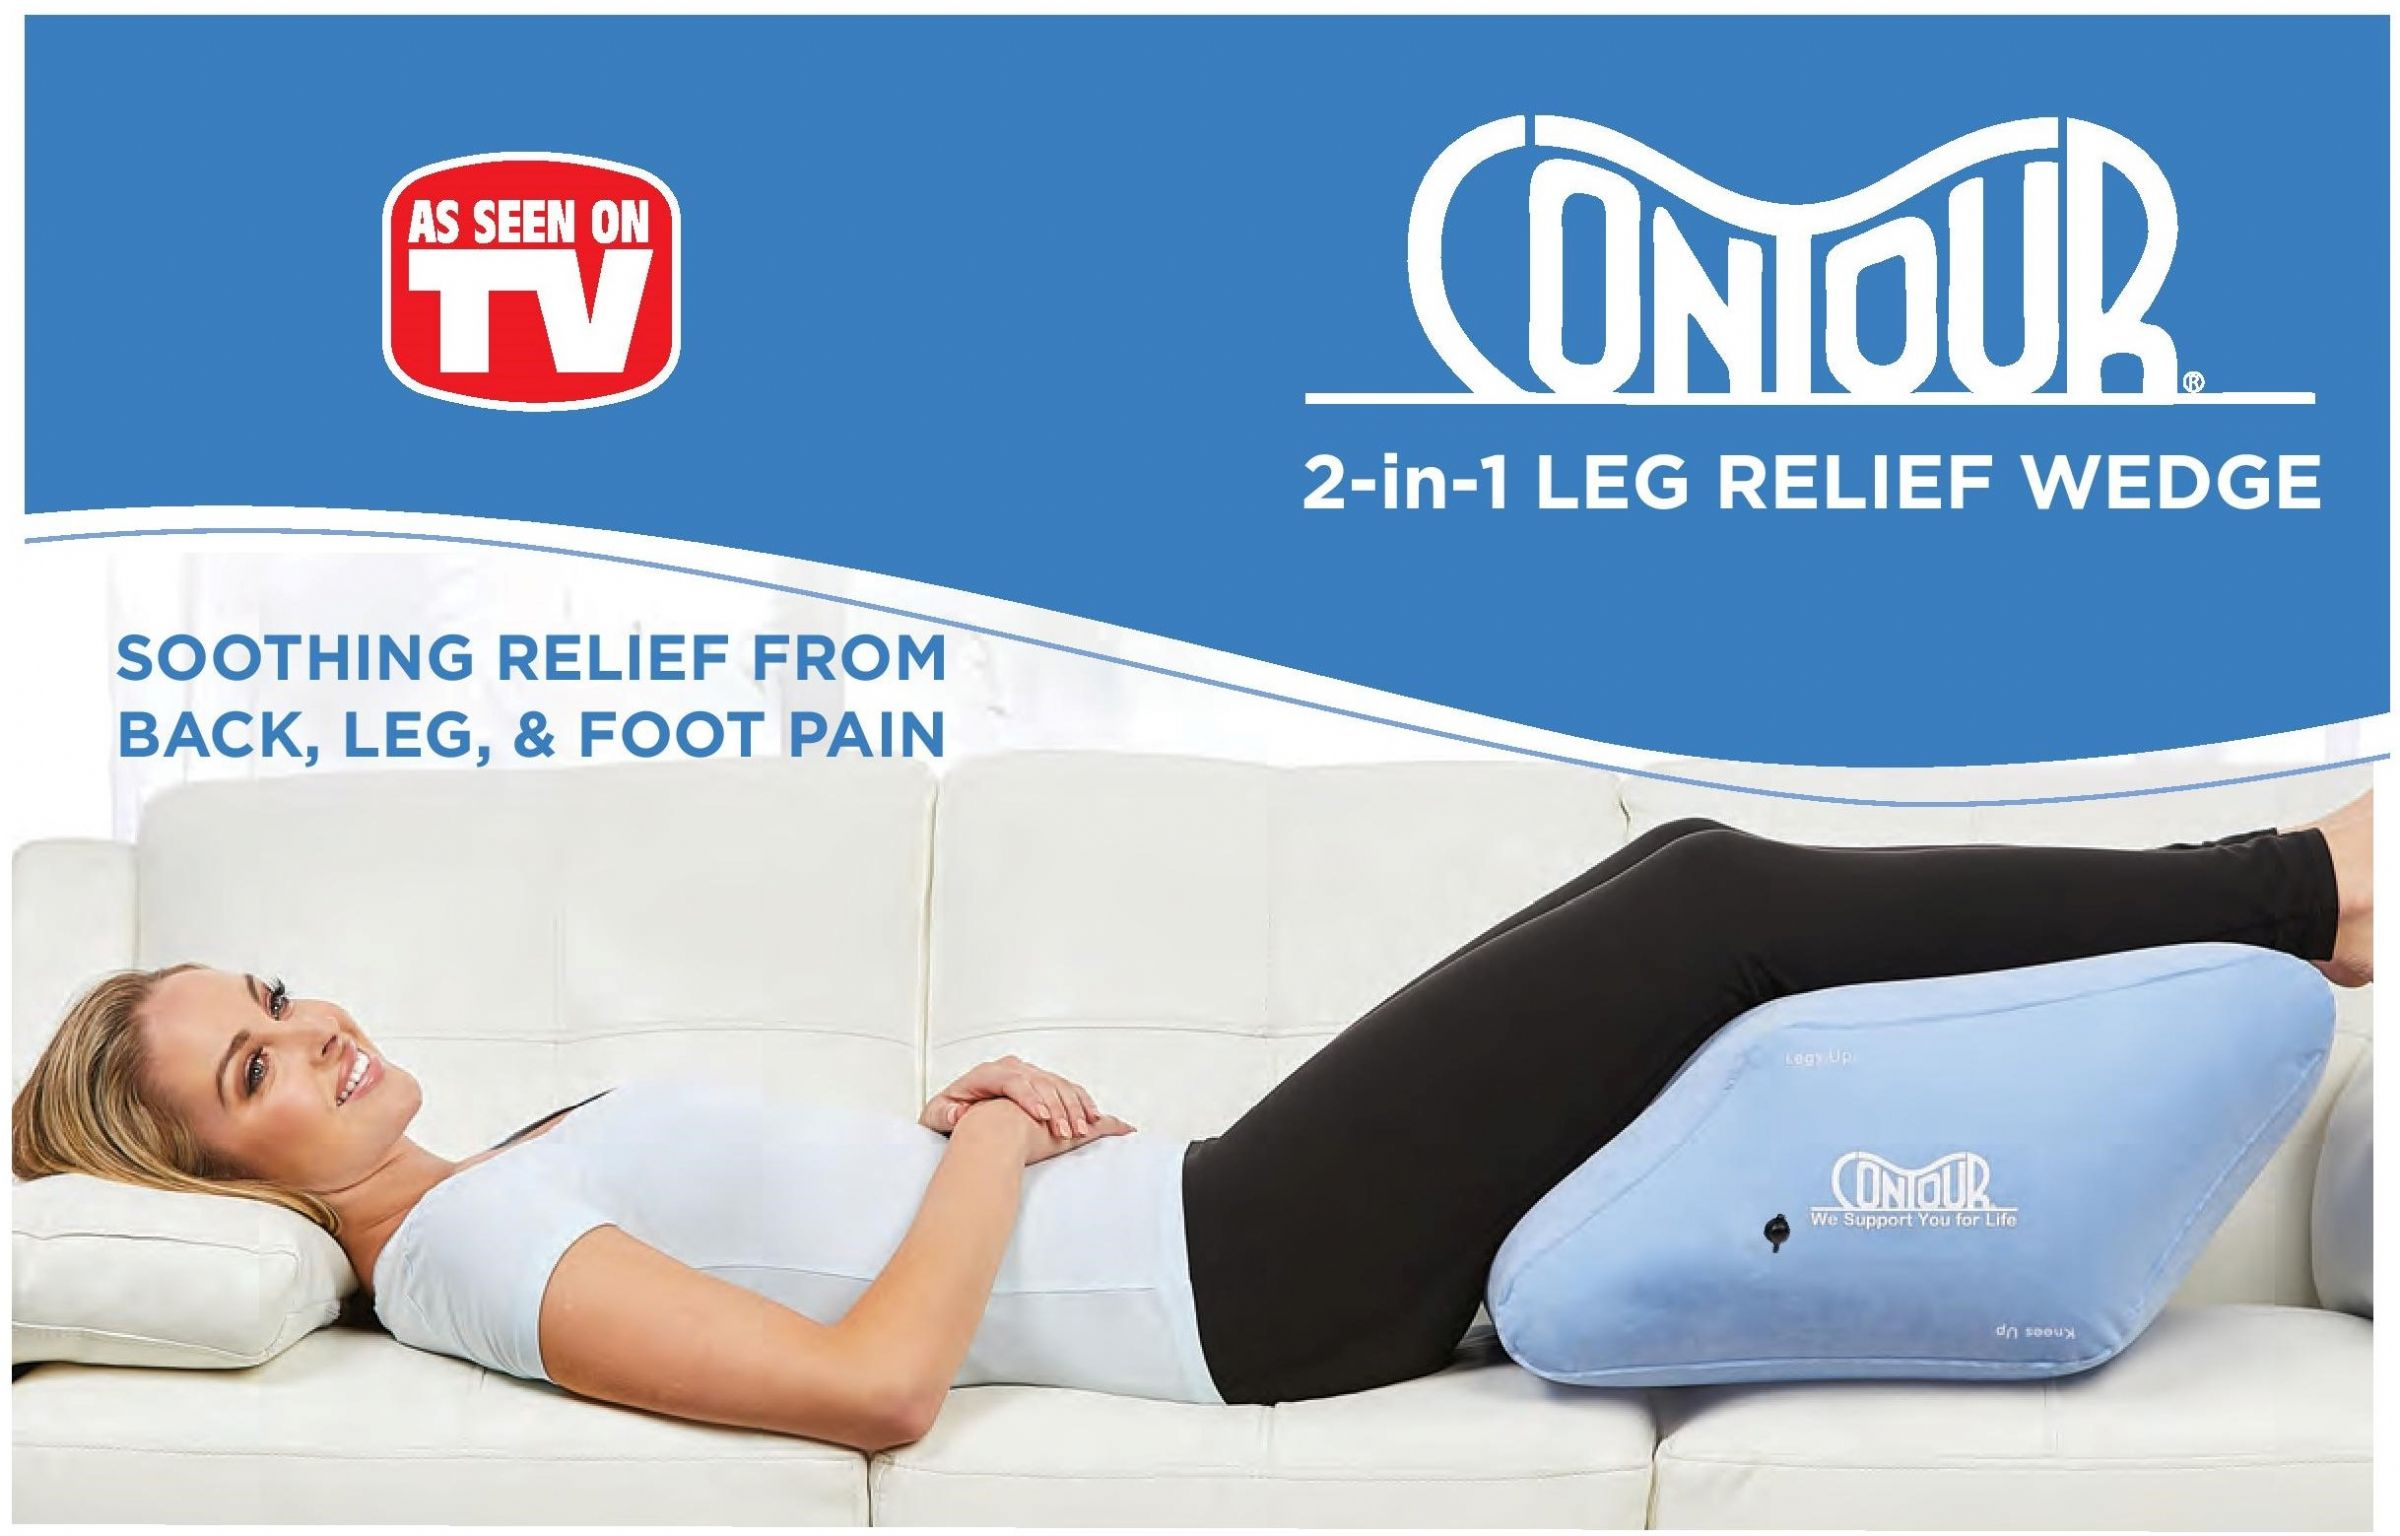 inflatable 2 in 1 leg relief wedge by contour living